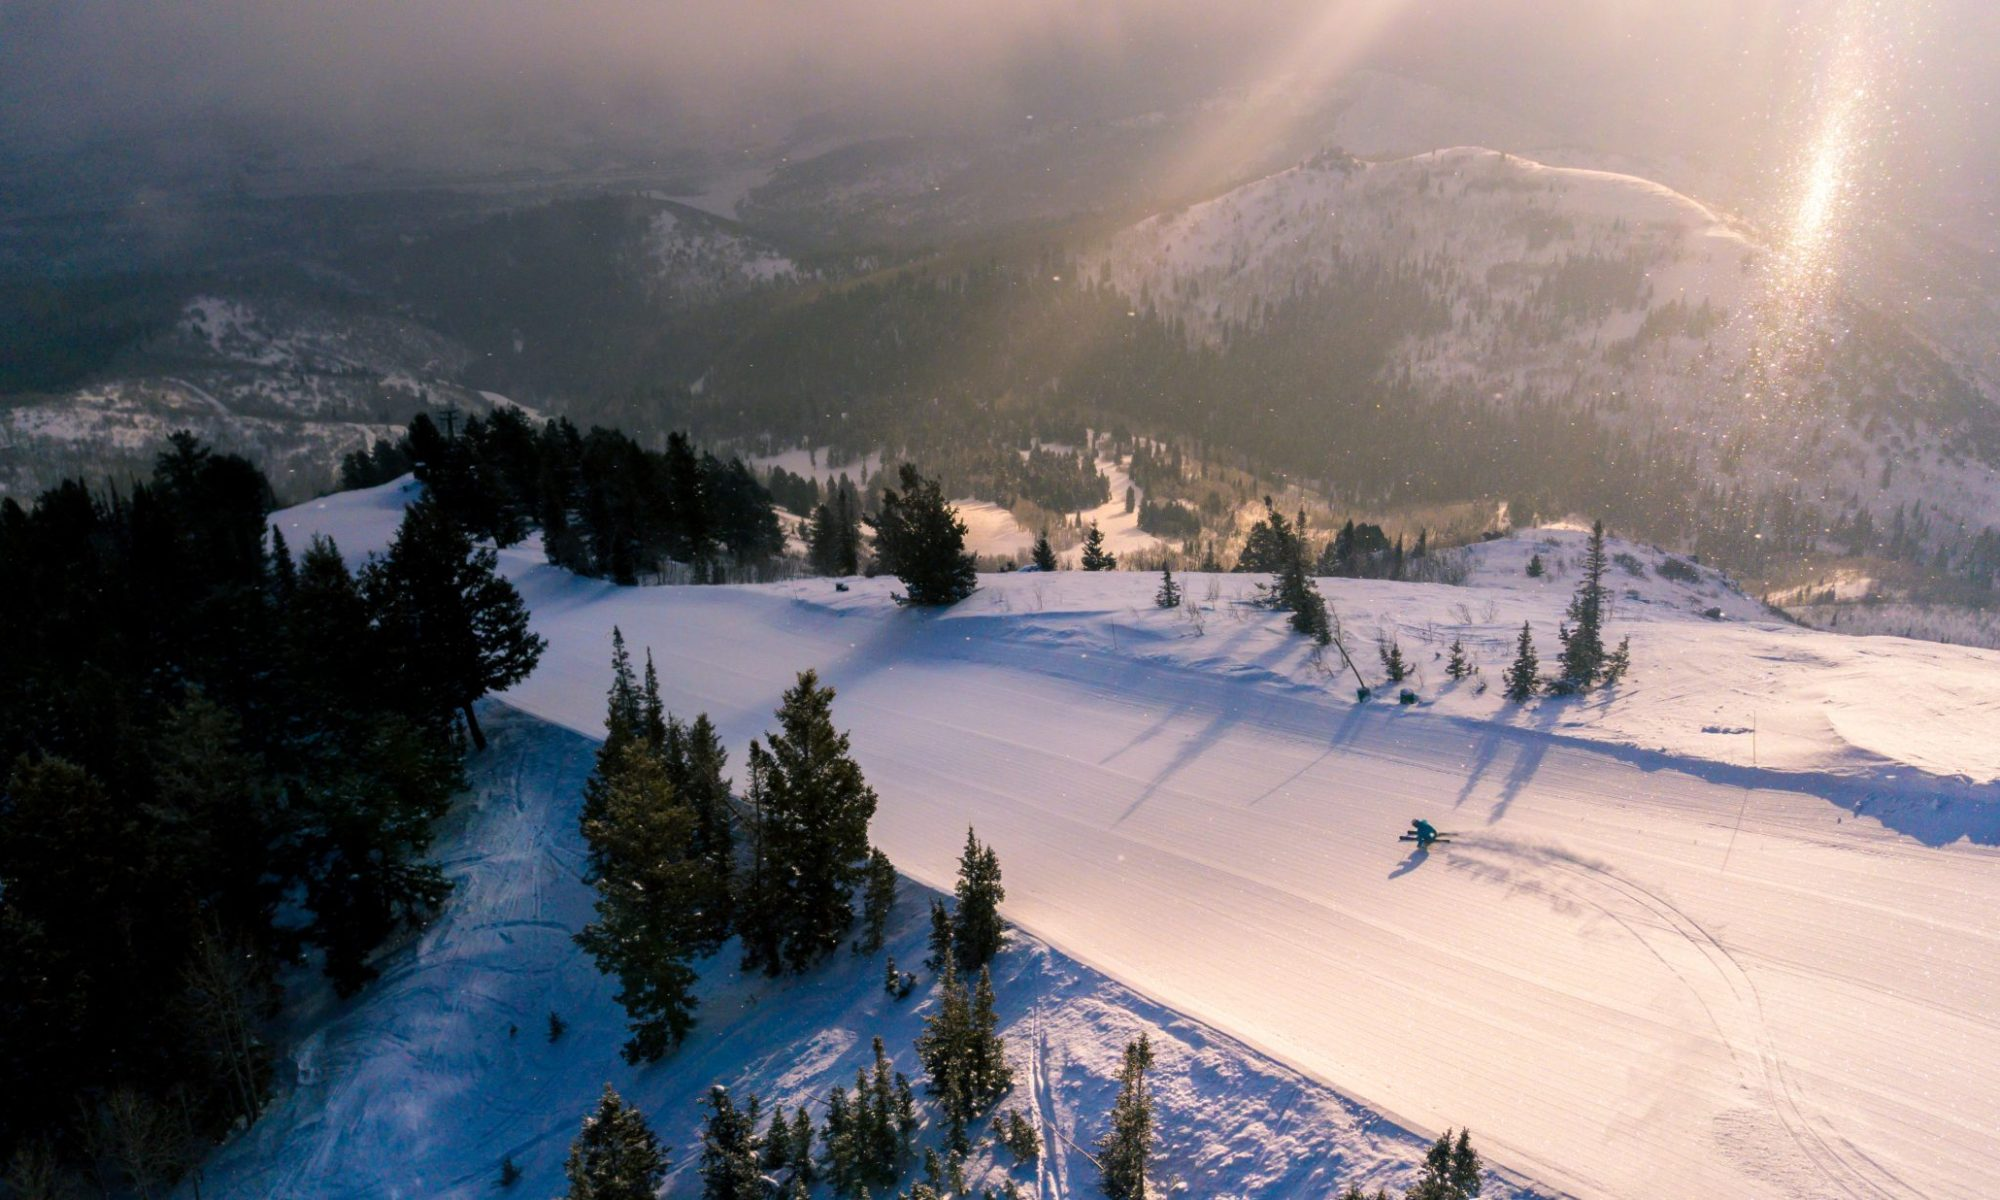 Deer Valley is considered the most expensive ski resort in the USA by a survey conducted by CheapHotels.org. The most expensive ski resorts in the USA.